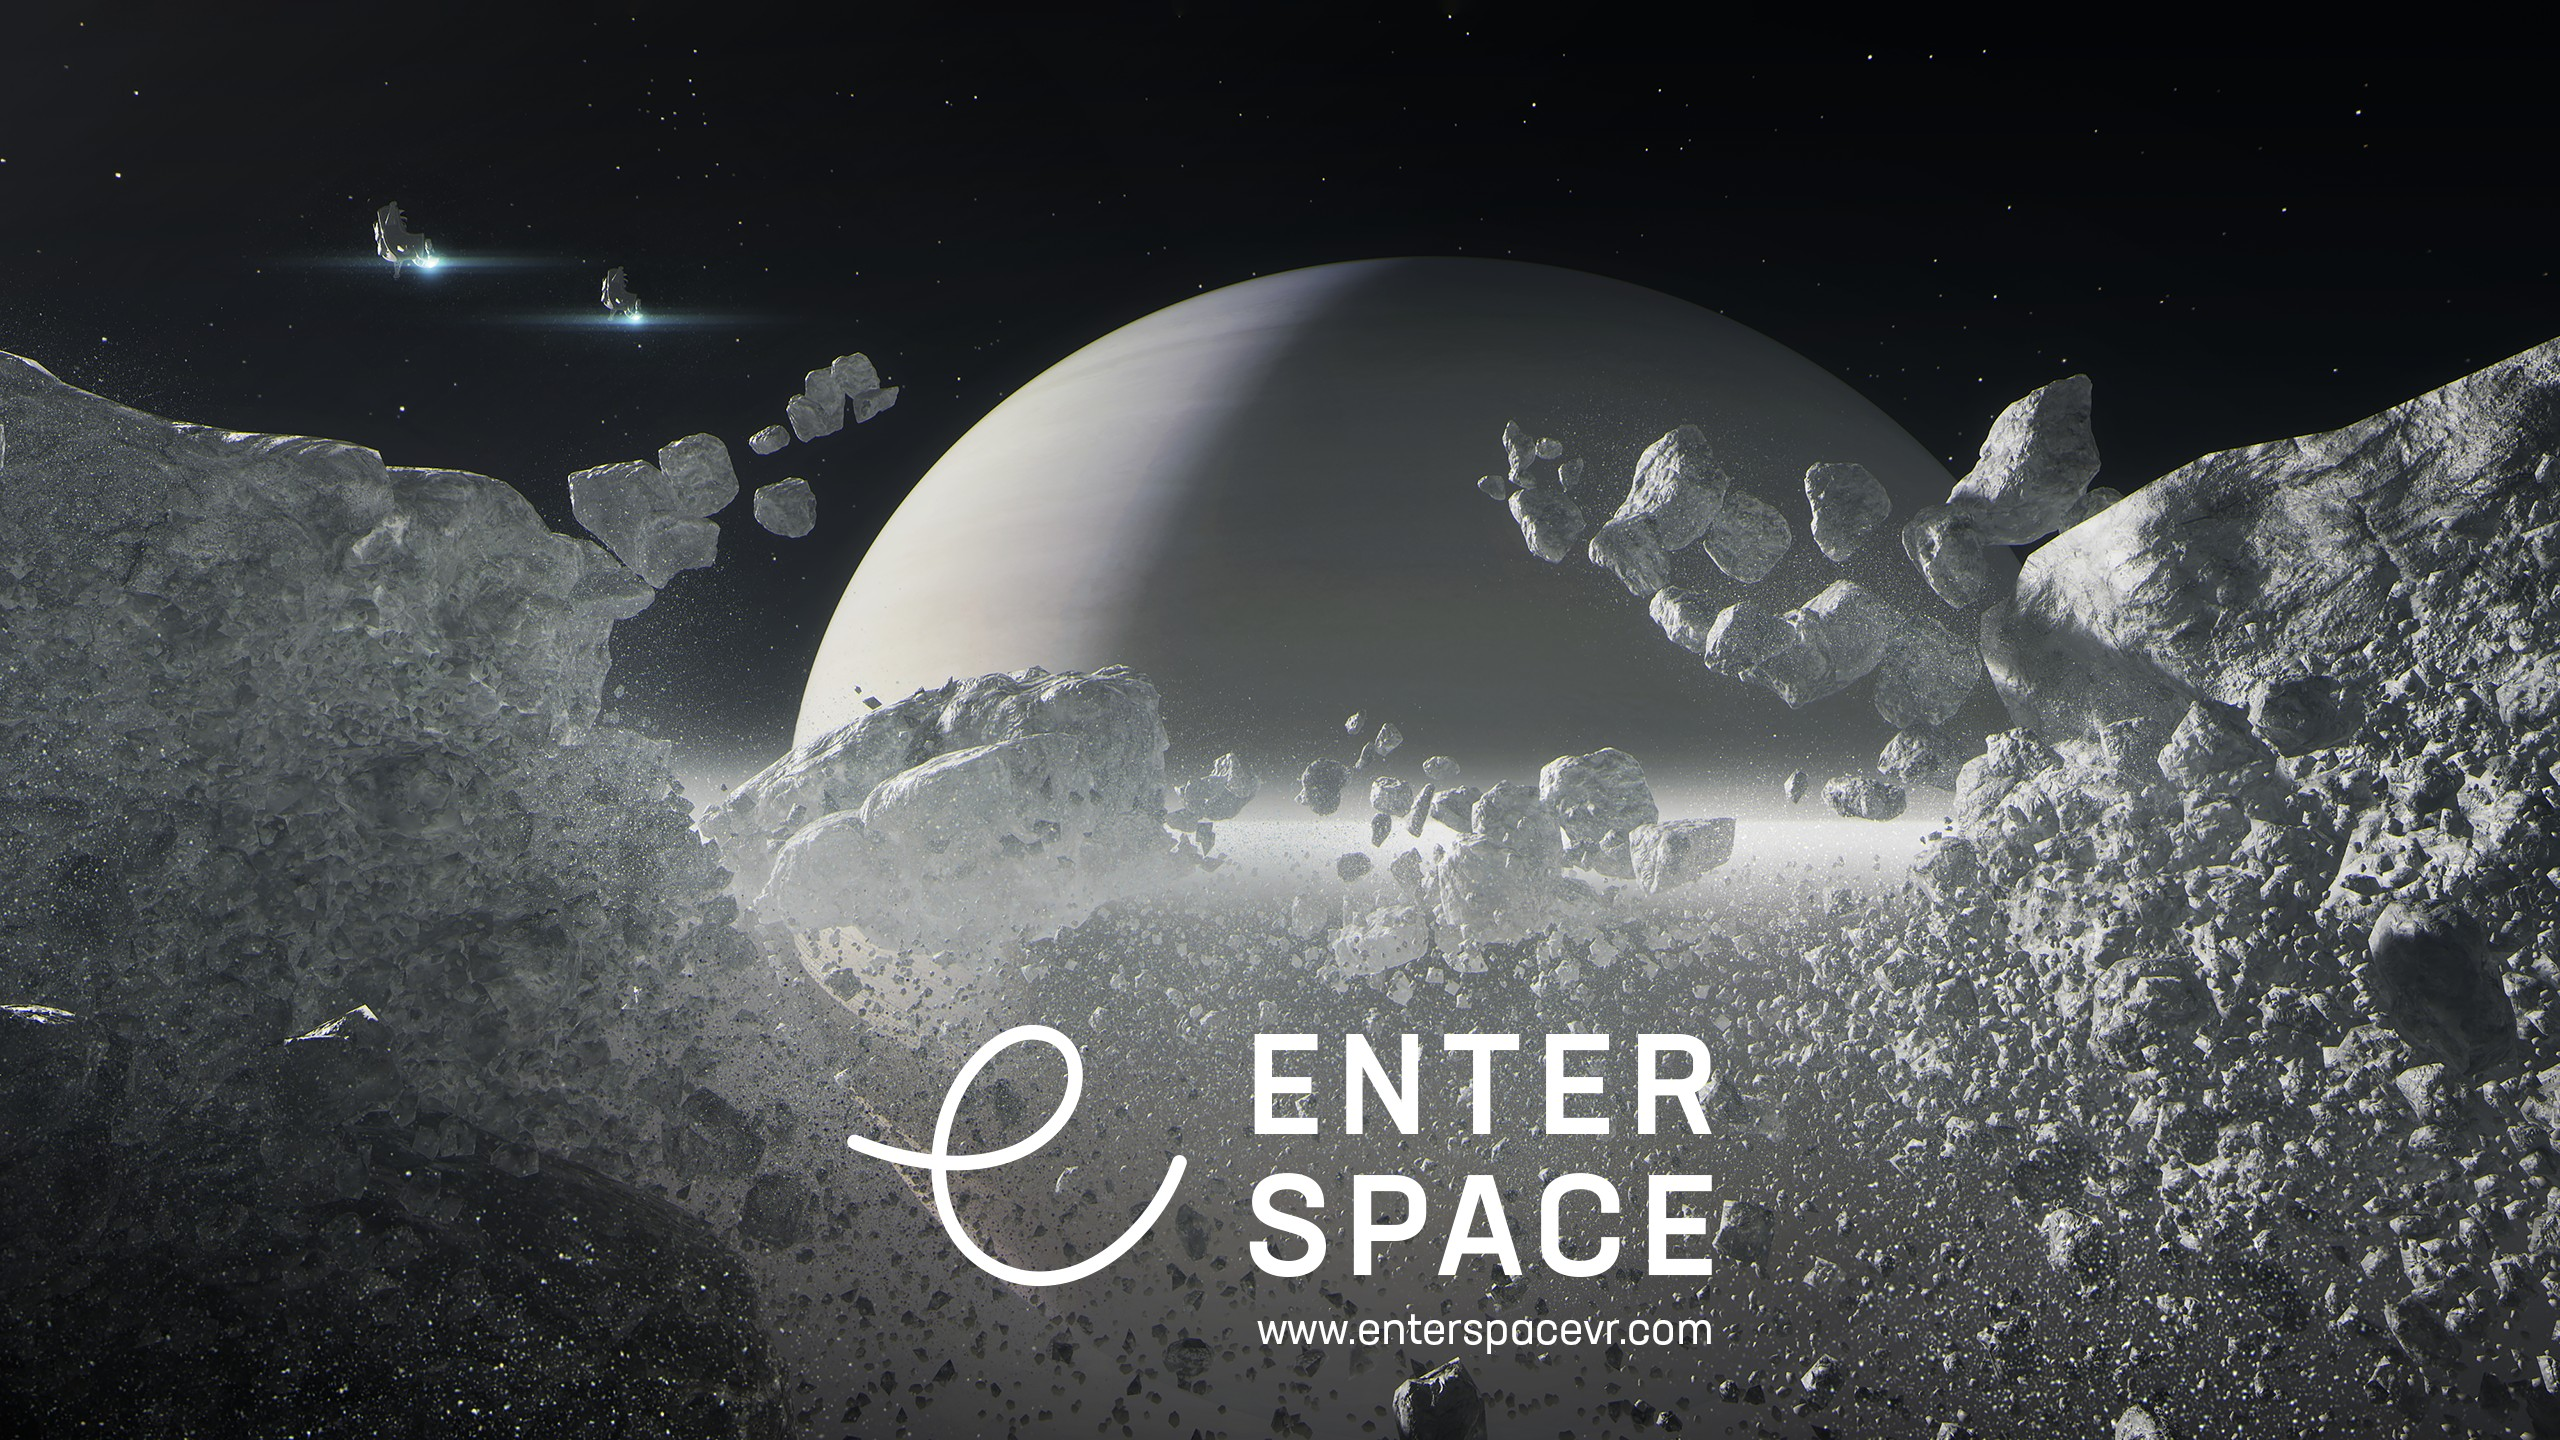 Enterspace